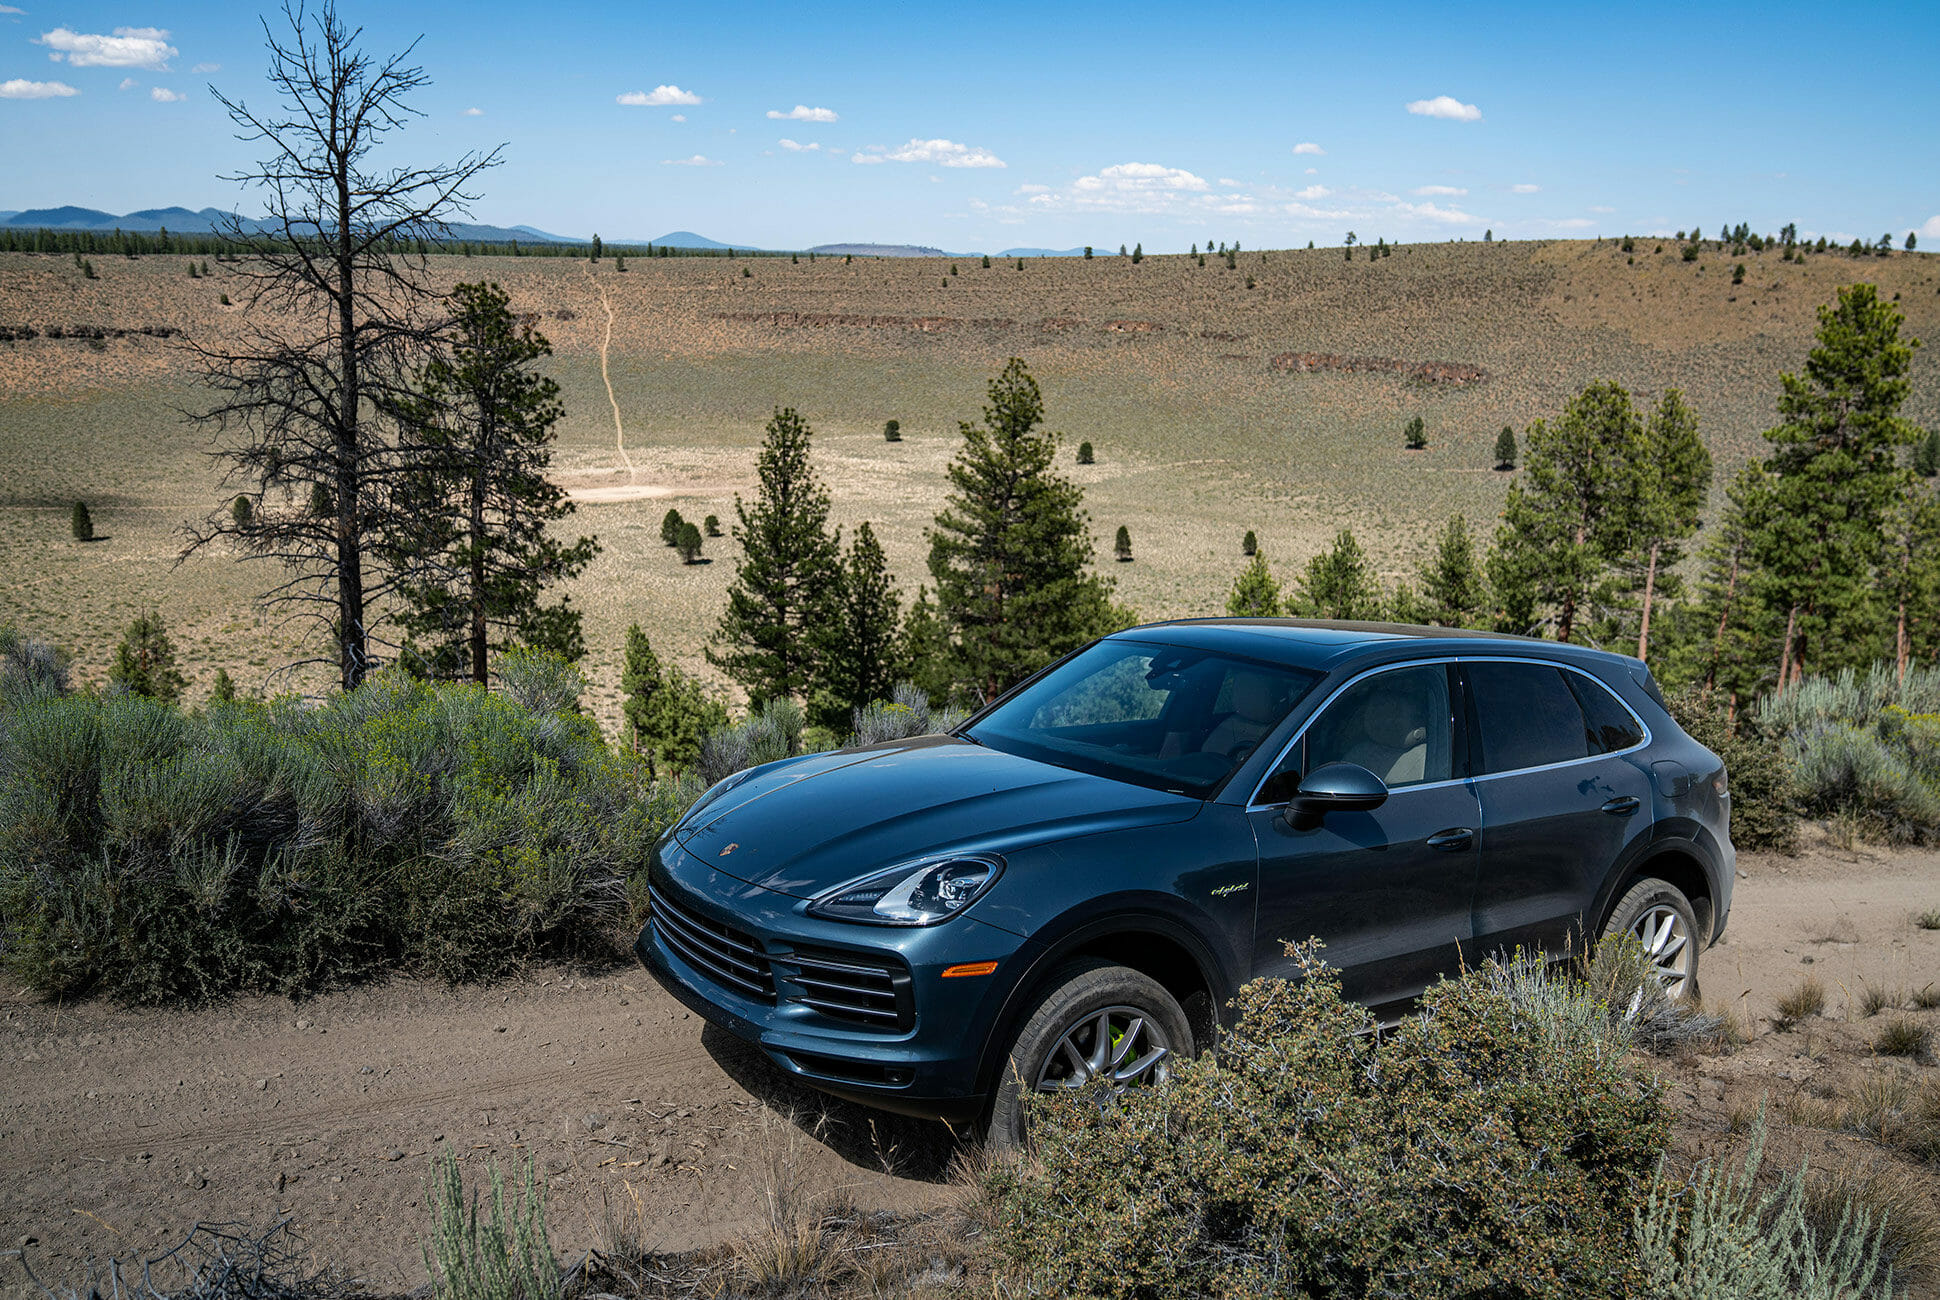 Pair-of-High-Tech-Porsche-Cayenne-Hybrids-gear-patrol-Hole-ambience-3